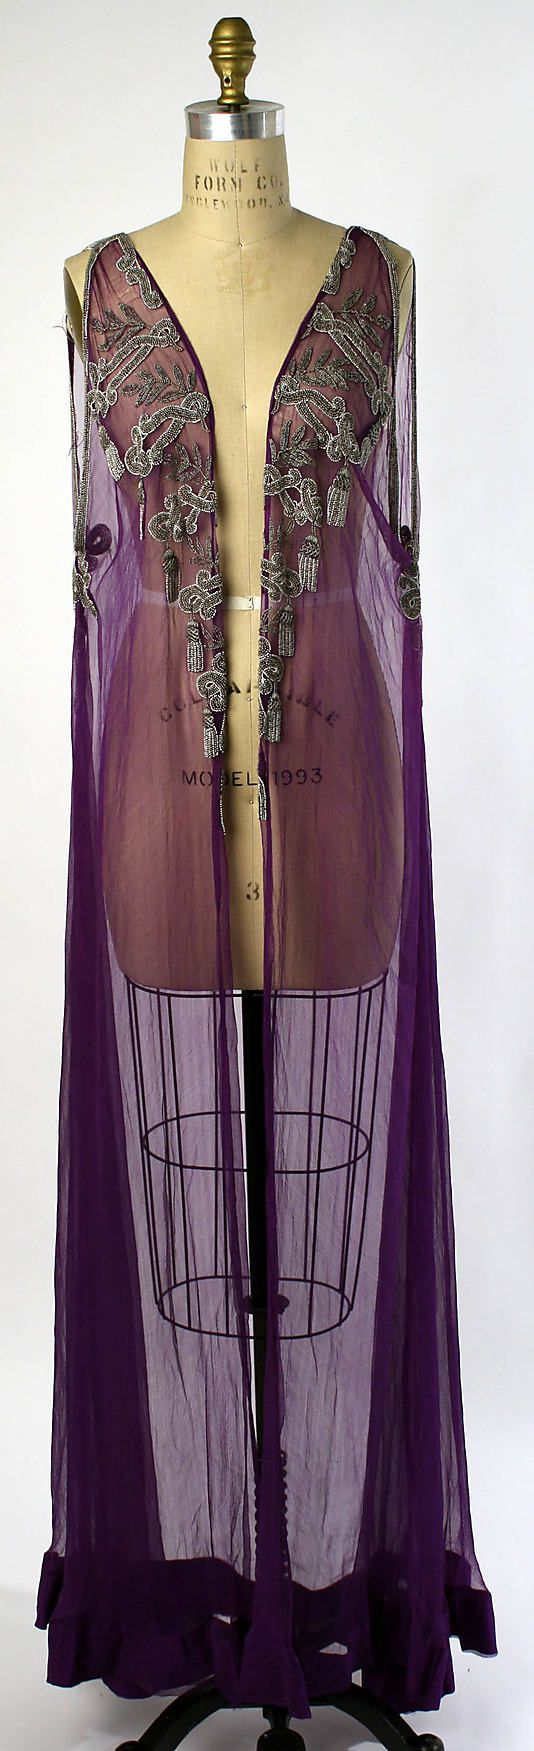 Negligée, 1918..........wowwww: Long Black Dresses, Historical Clothing, Vintage Fashion Art Deco, Historical Fashion, Beads Embroidery, Contemporary Embroidery, Metropolitan Museums, Circa 1918, Vintage Clothing